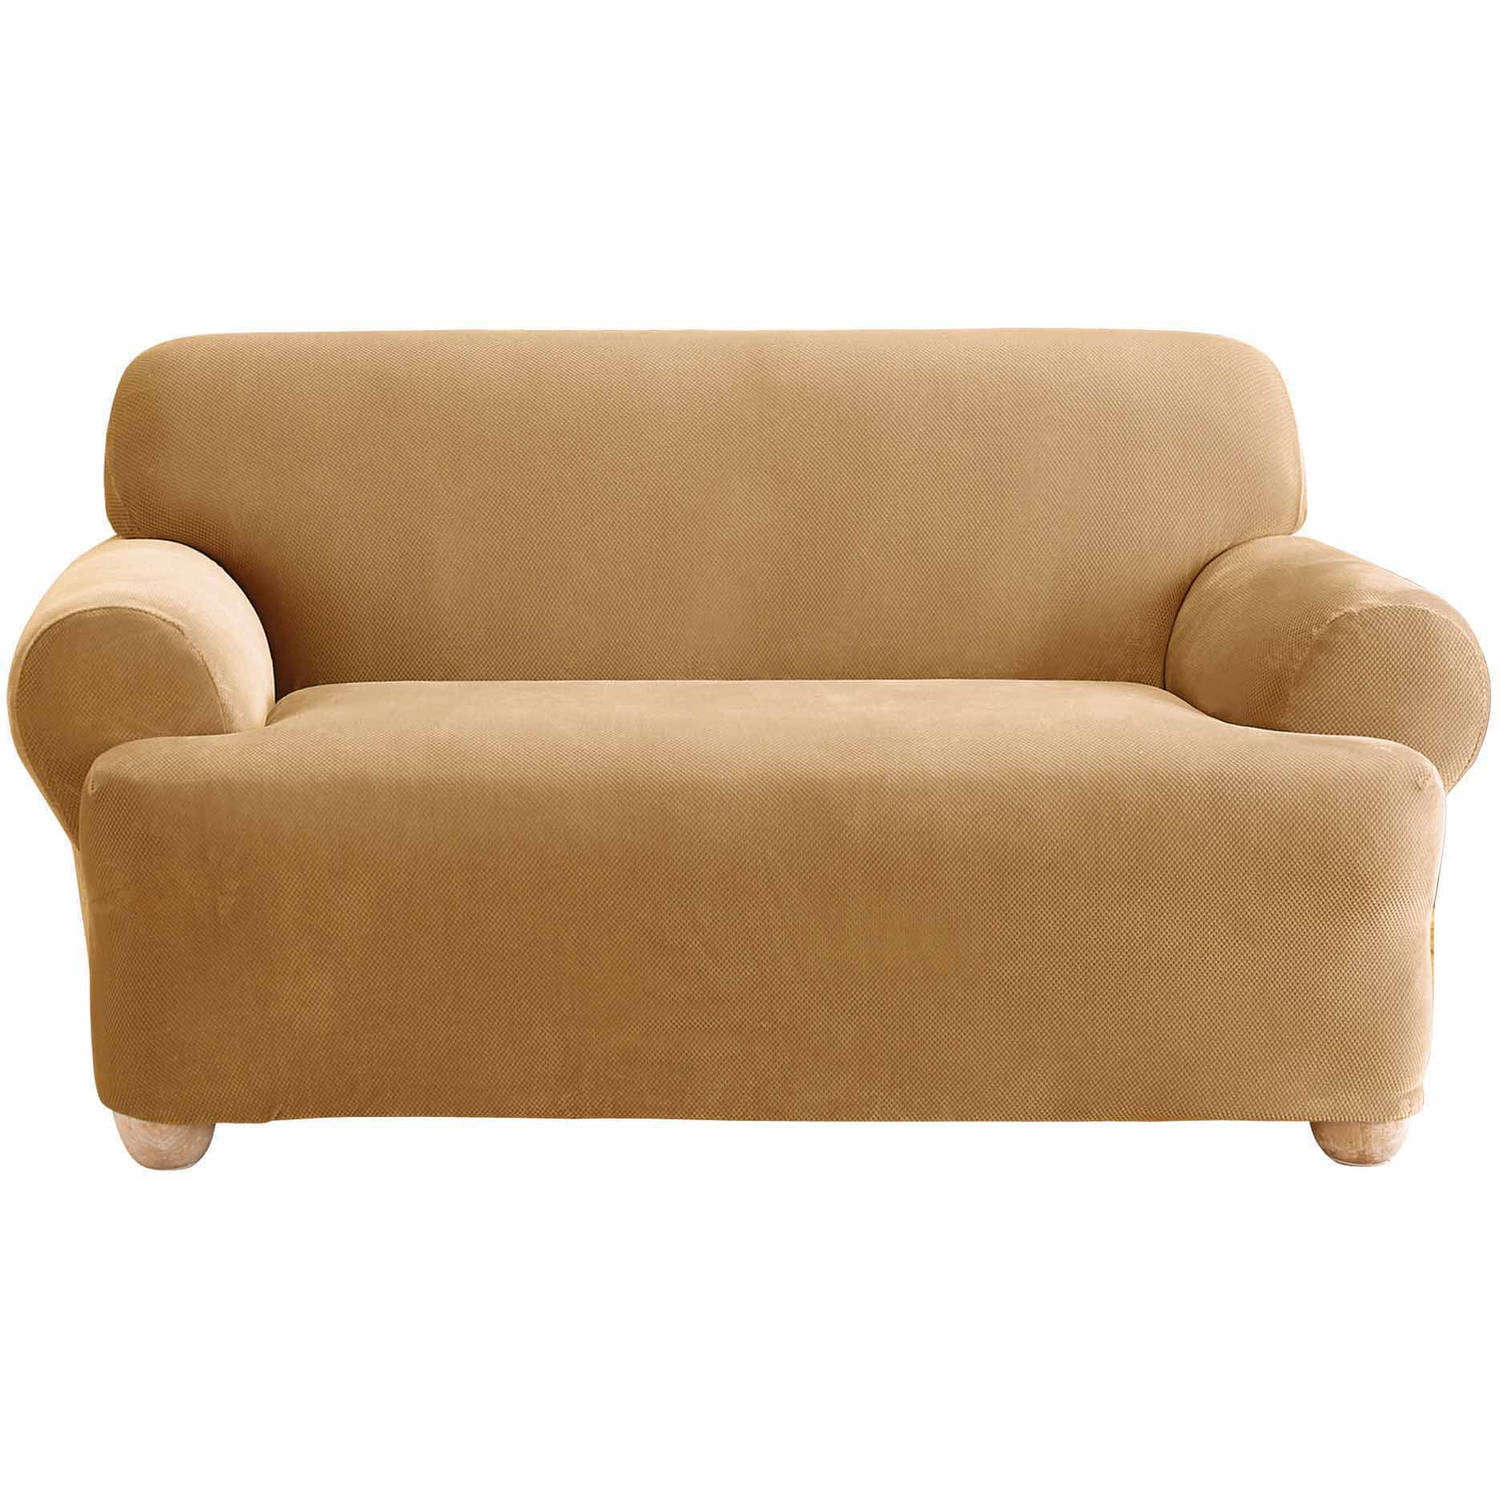 sure fit stretch pique 3 piece t cushion sofa slipcover microfiber sectional with chaise lounge maya